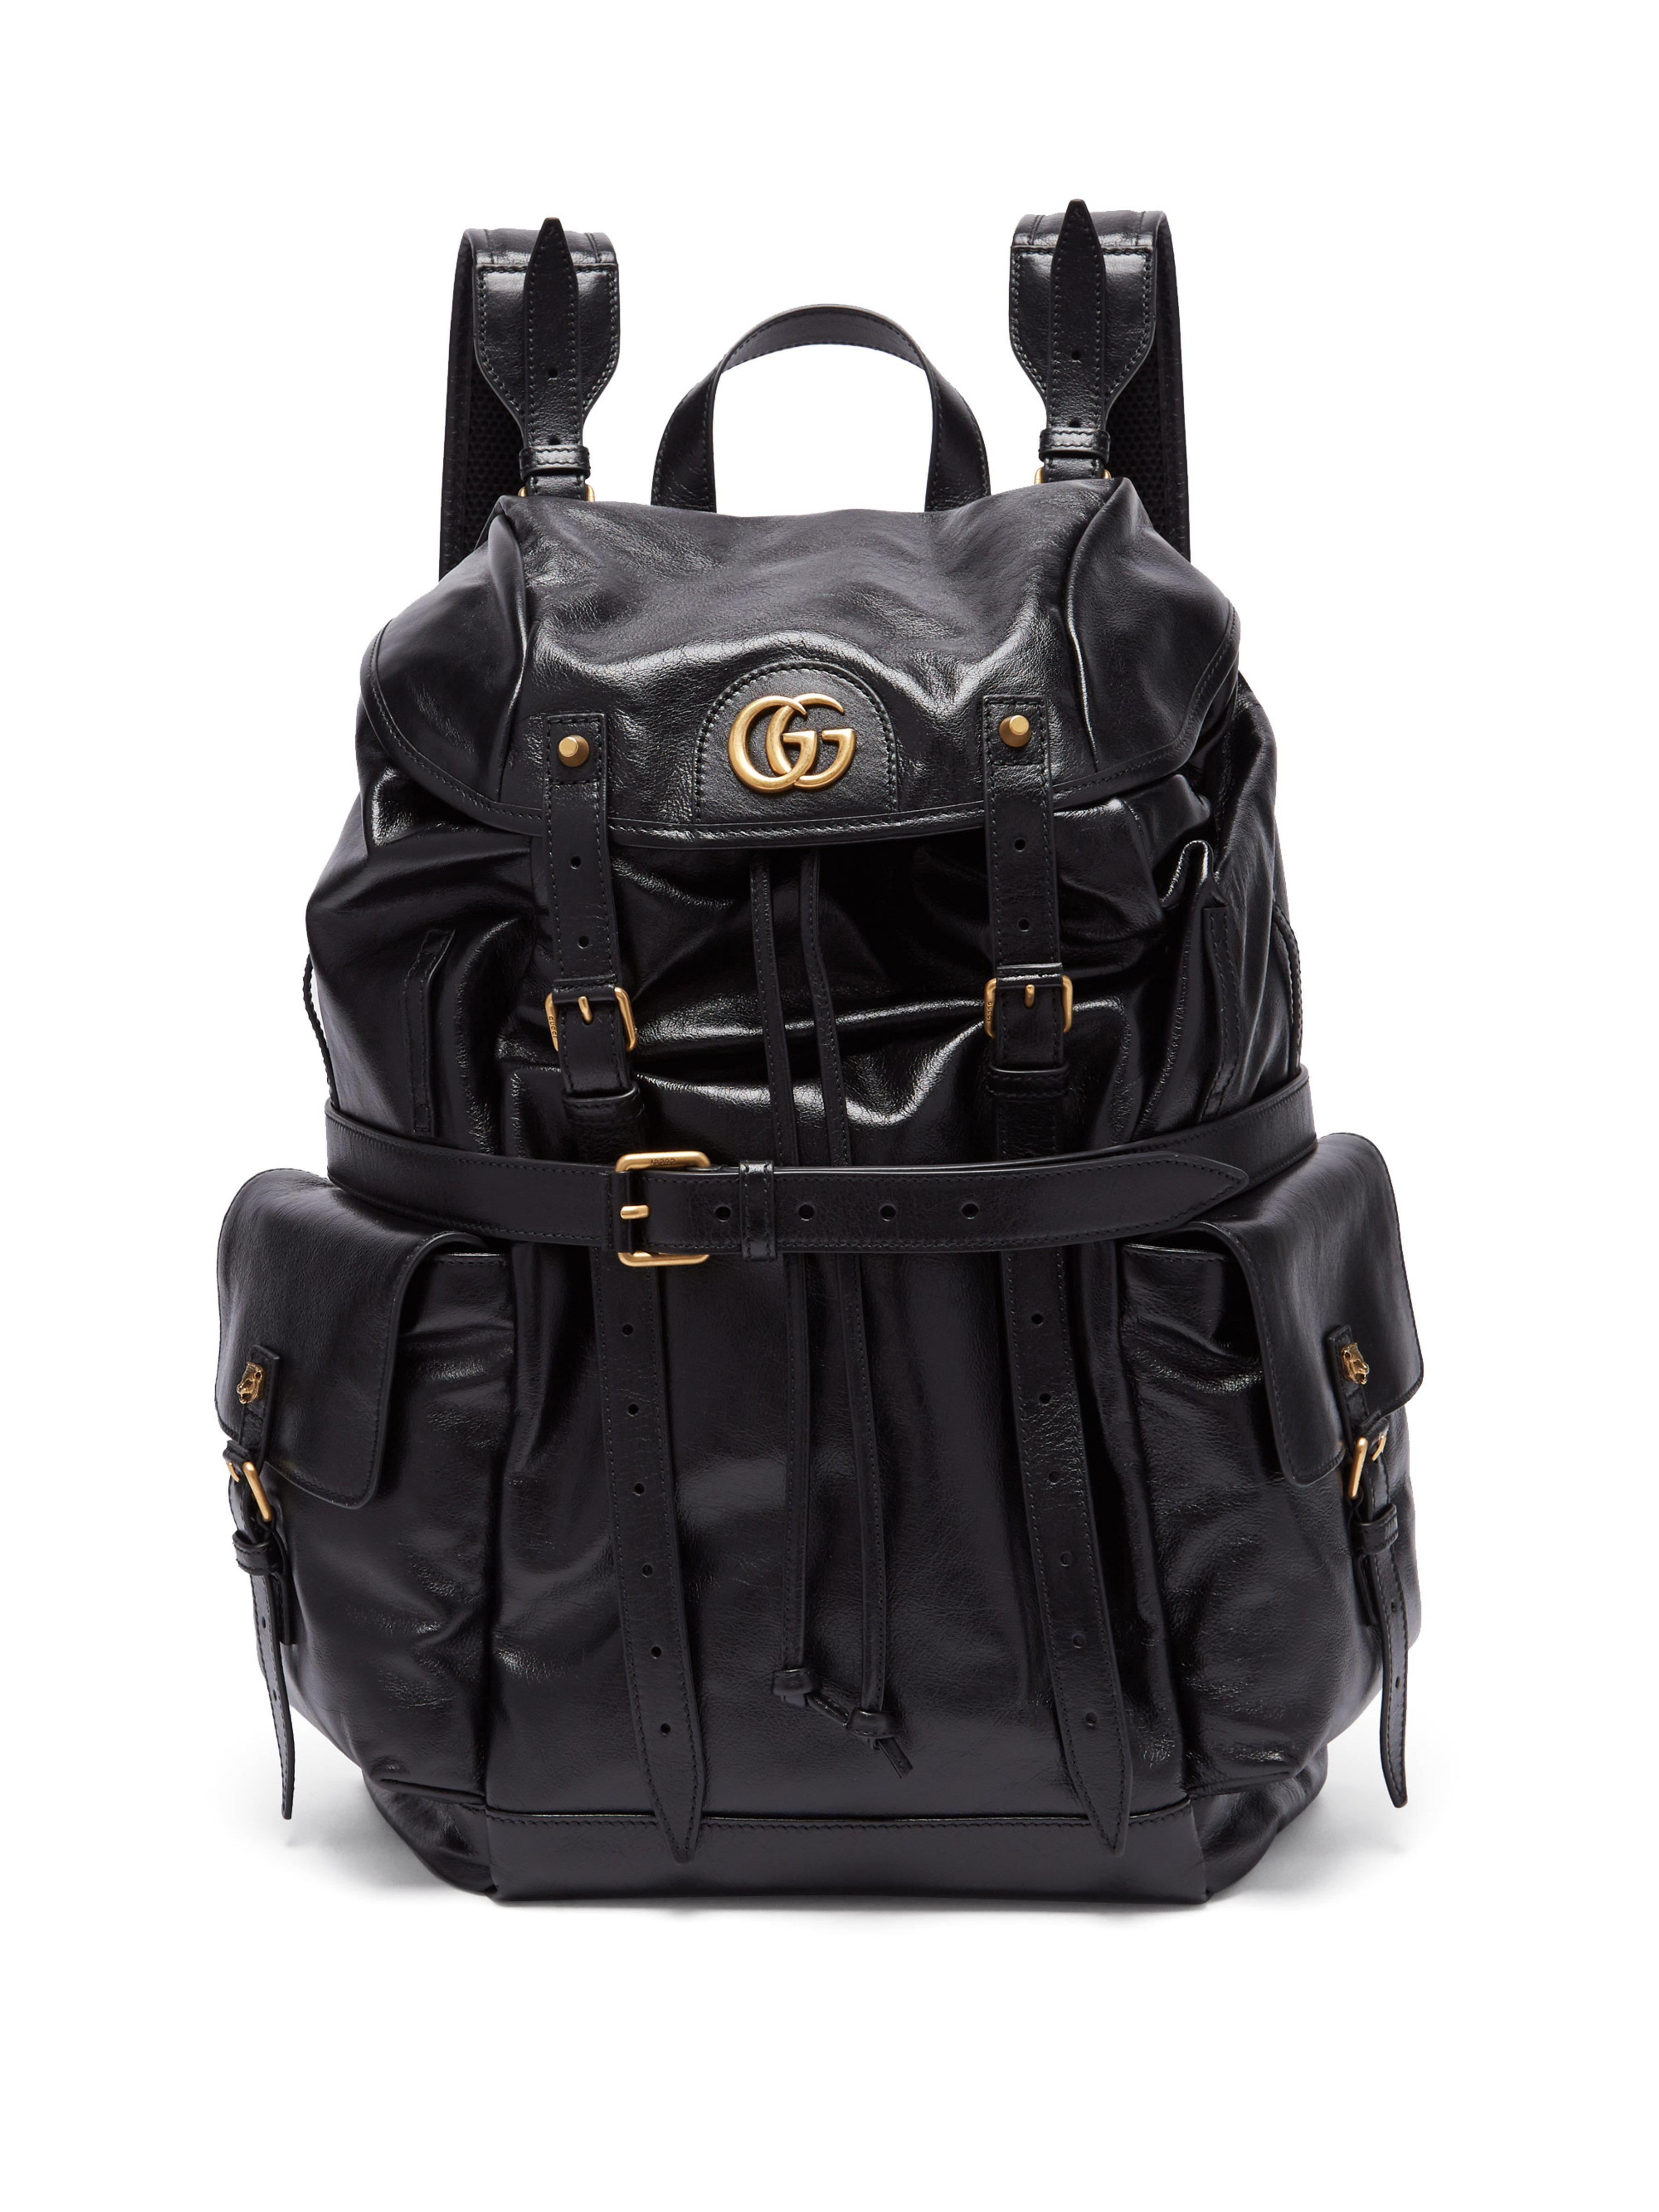 Gucci Gg Plaque Crinkled Leather Backpack in Black for Men - Lyst c67f24ae6c751